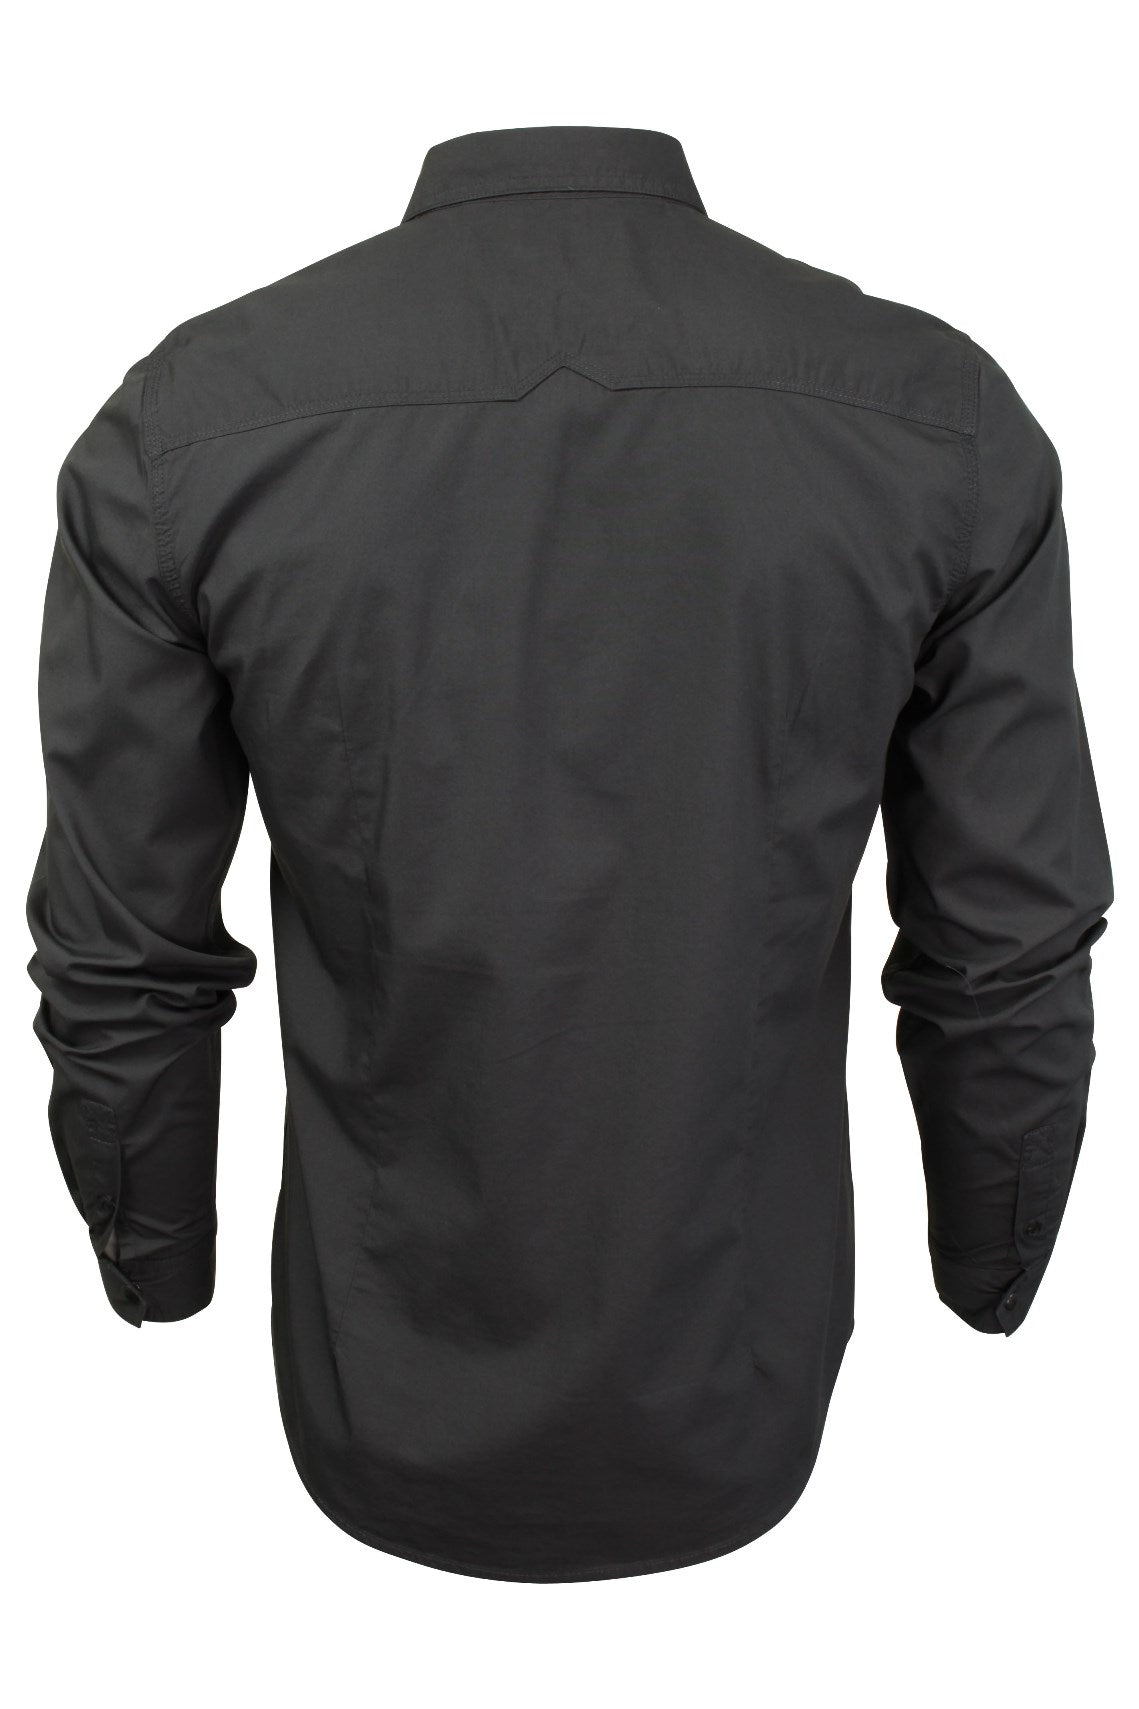 Mens Shirt by Dissident 'Bismarck' Long Sleeved-3